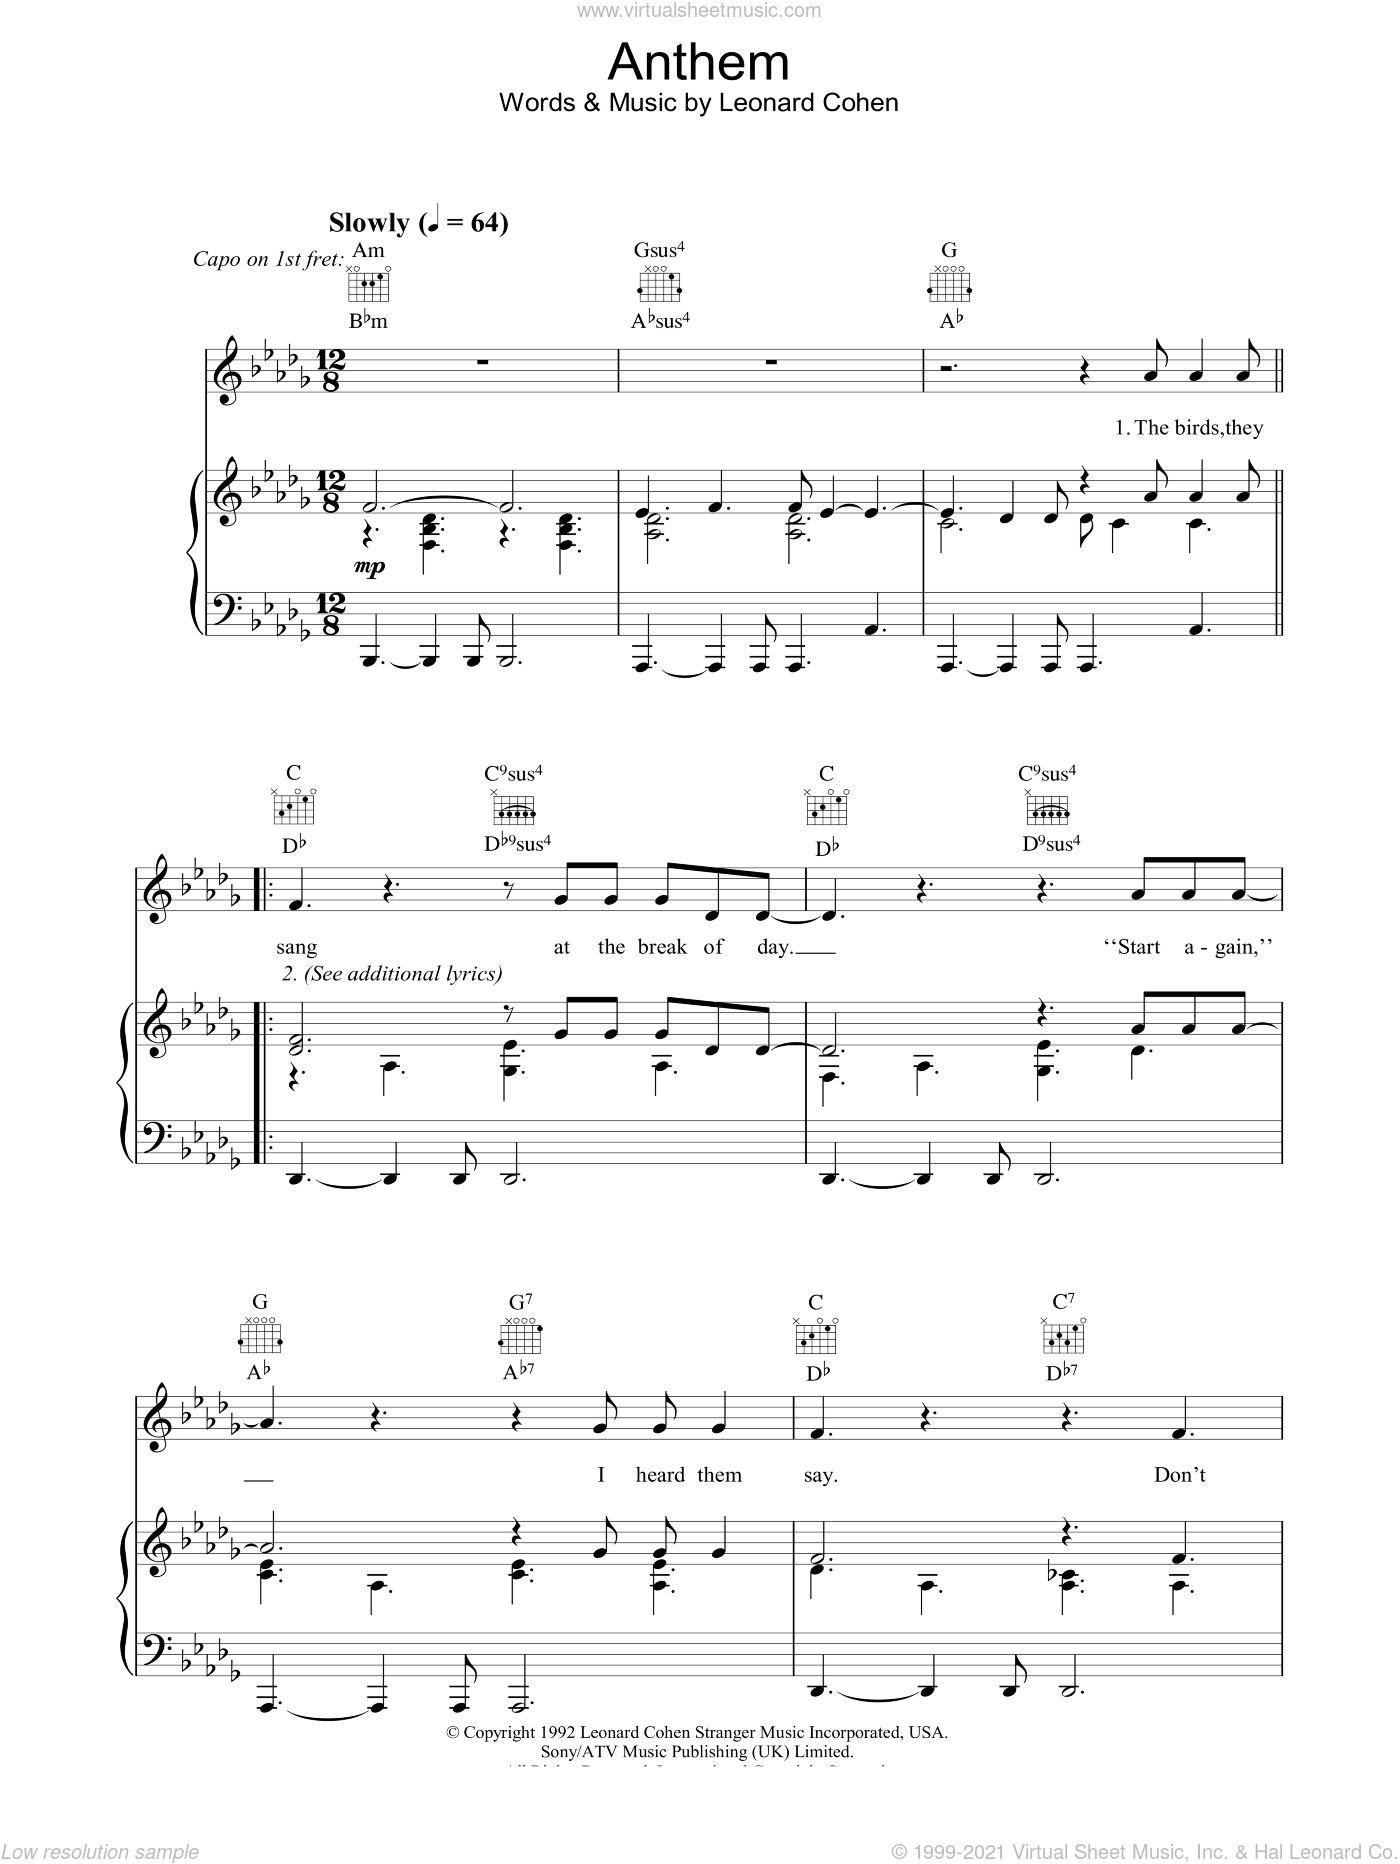 Anthem sheet music for voice, piano or guitar by Leonard Cohen, intermediate skill level